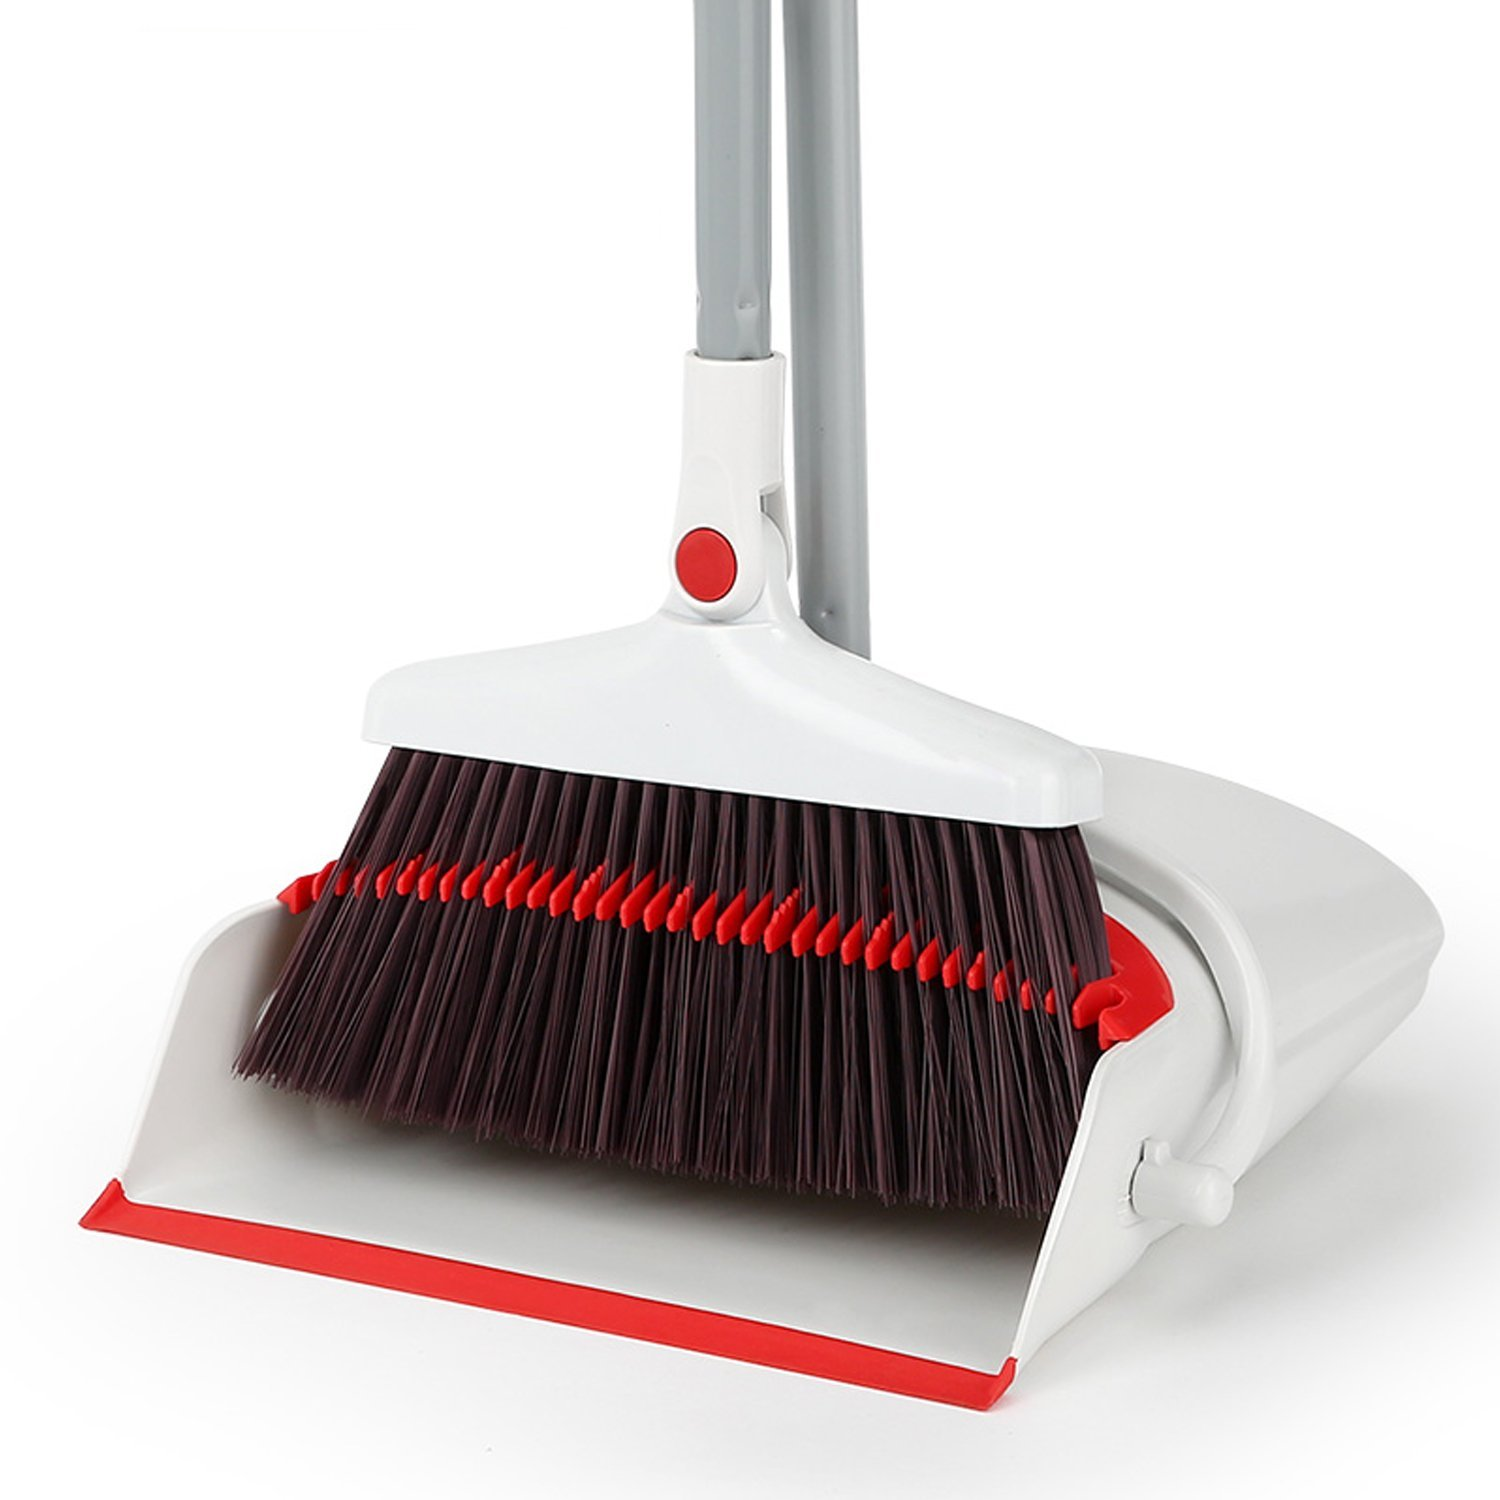 Buy Broom And Dustpan Set ,standing Upright Grips Sweep